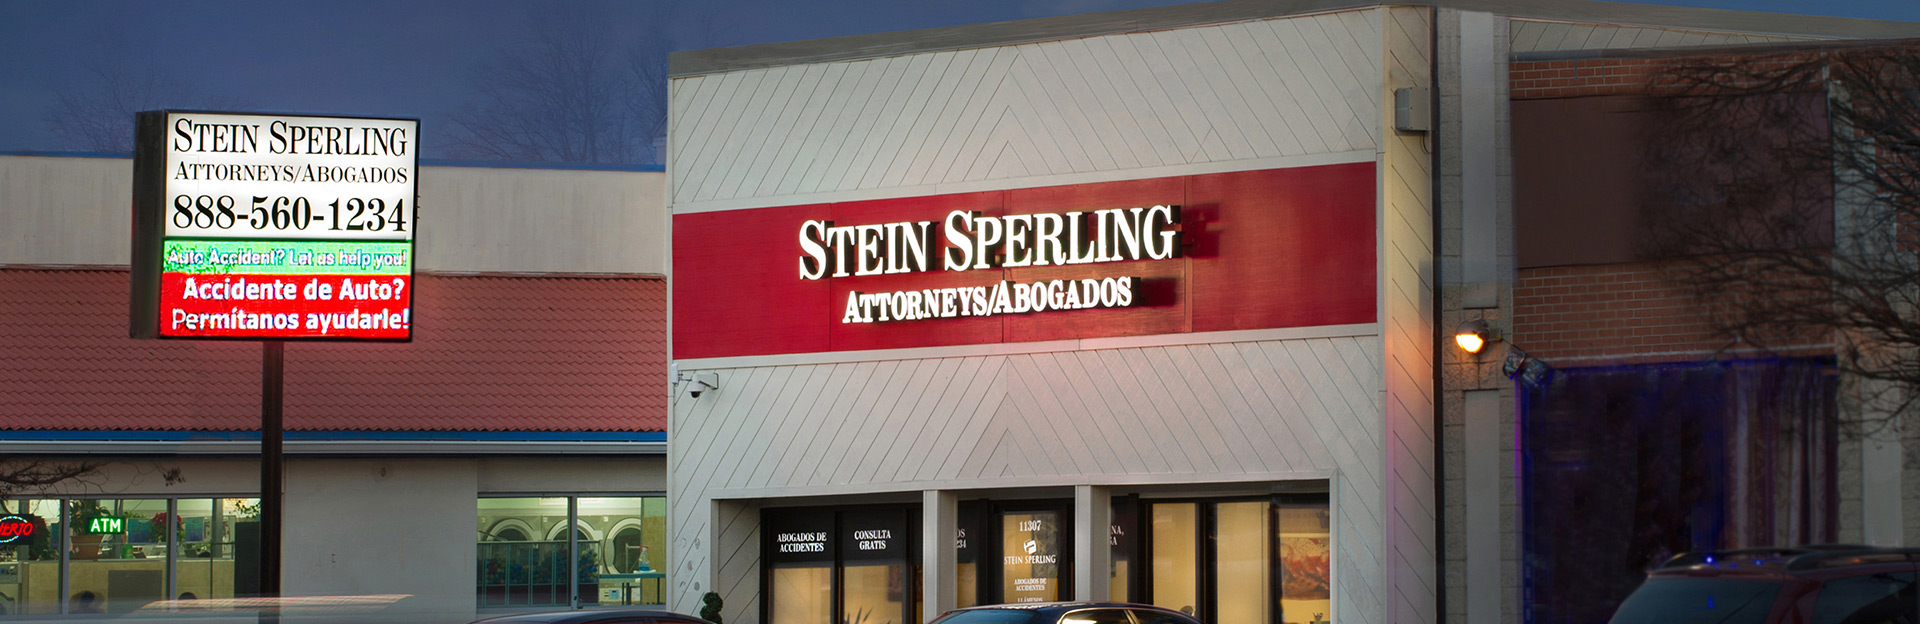 Stein Sperling Office Wheaton Maryland